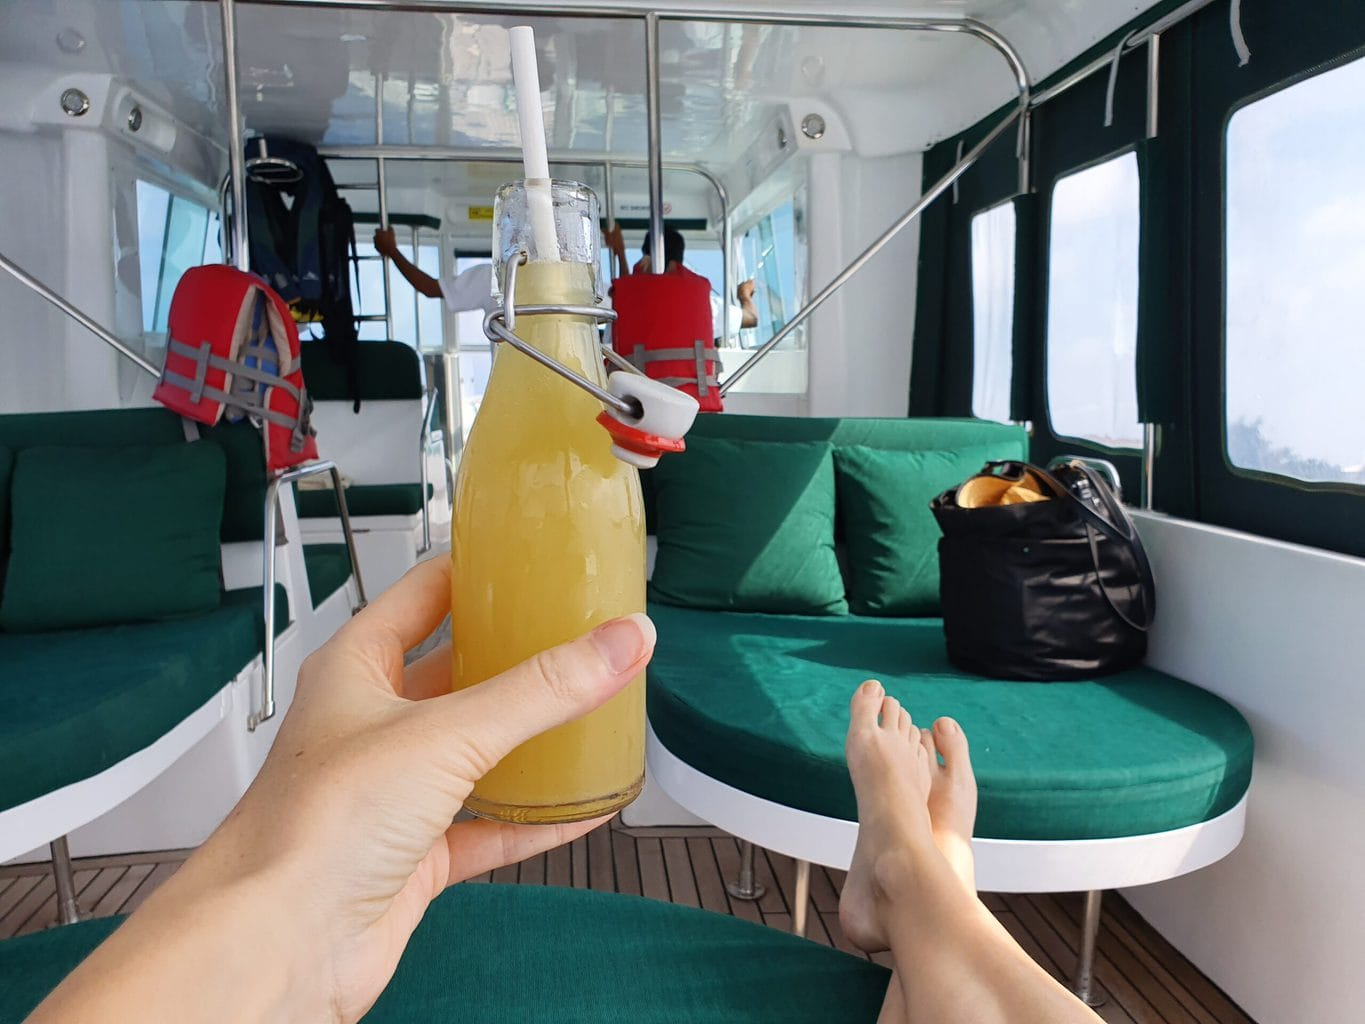 Pick up from the airport to Gili Lankanfushi